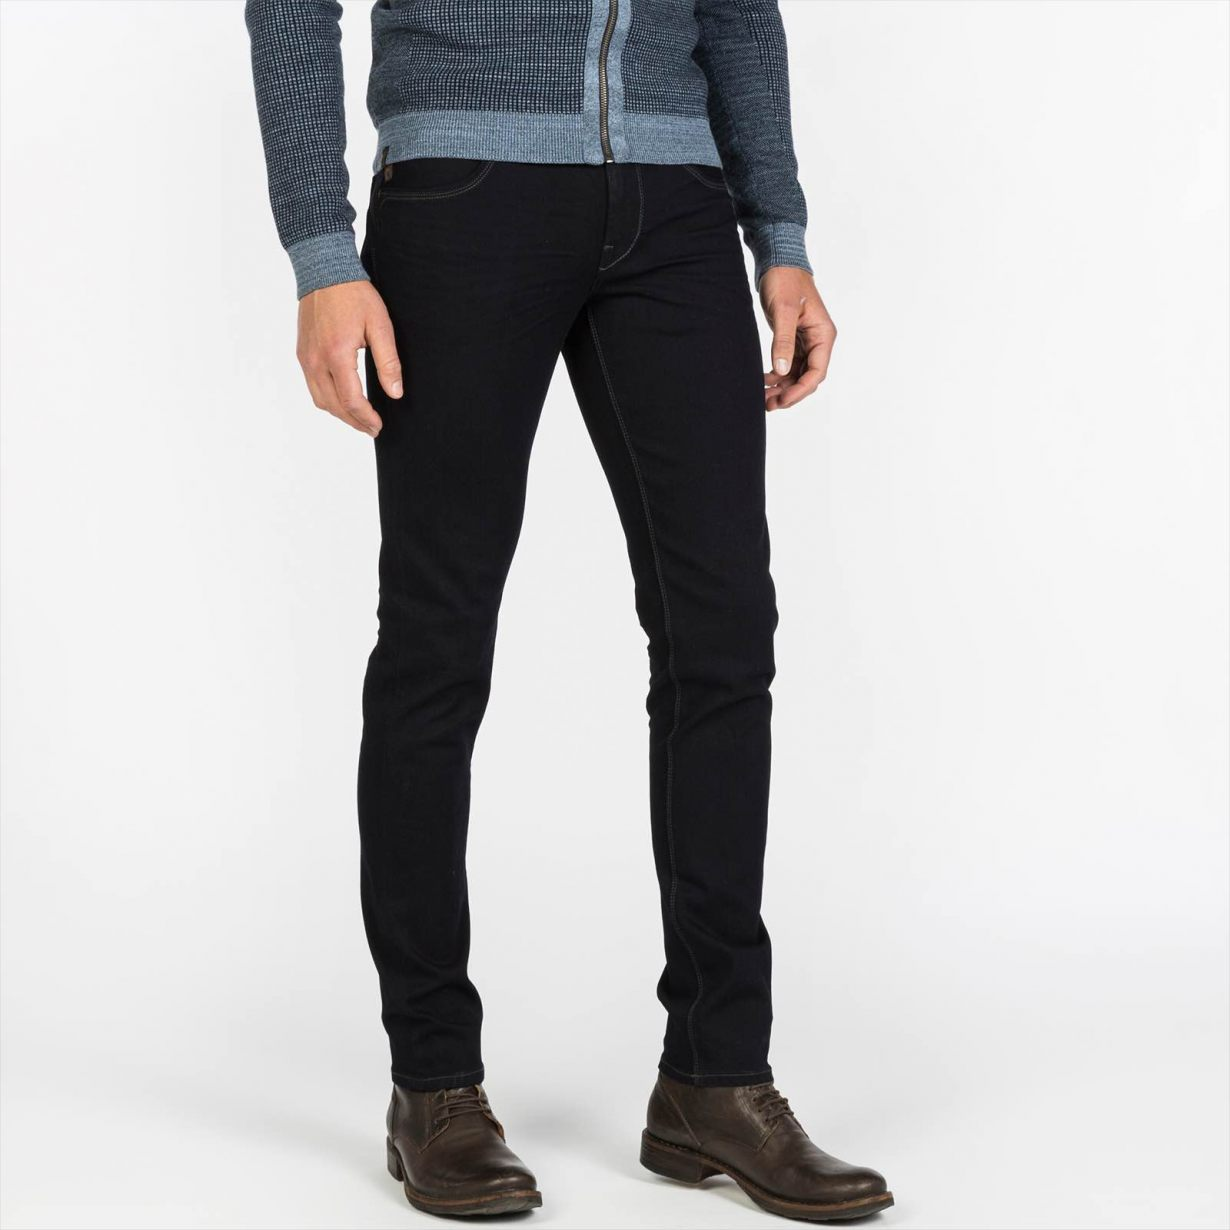 Vanguard Jeans VTR850-DFW Denim